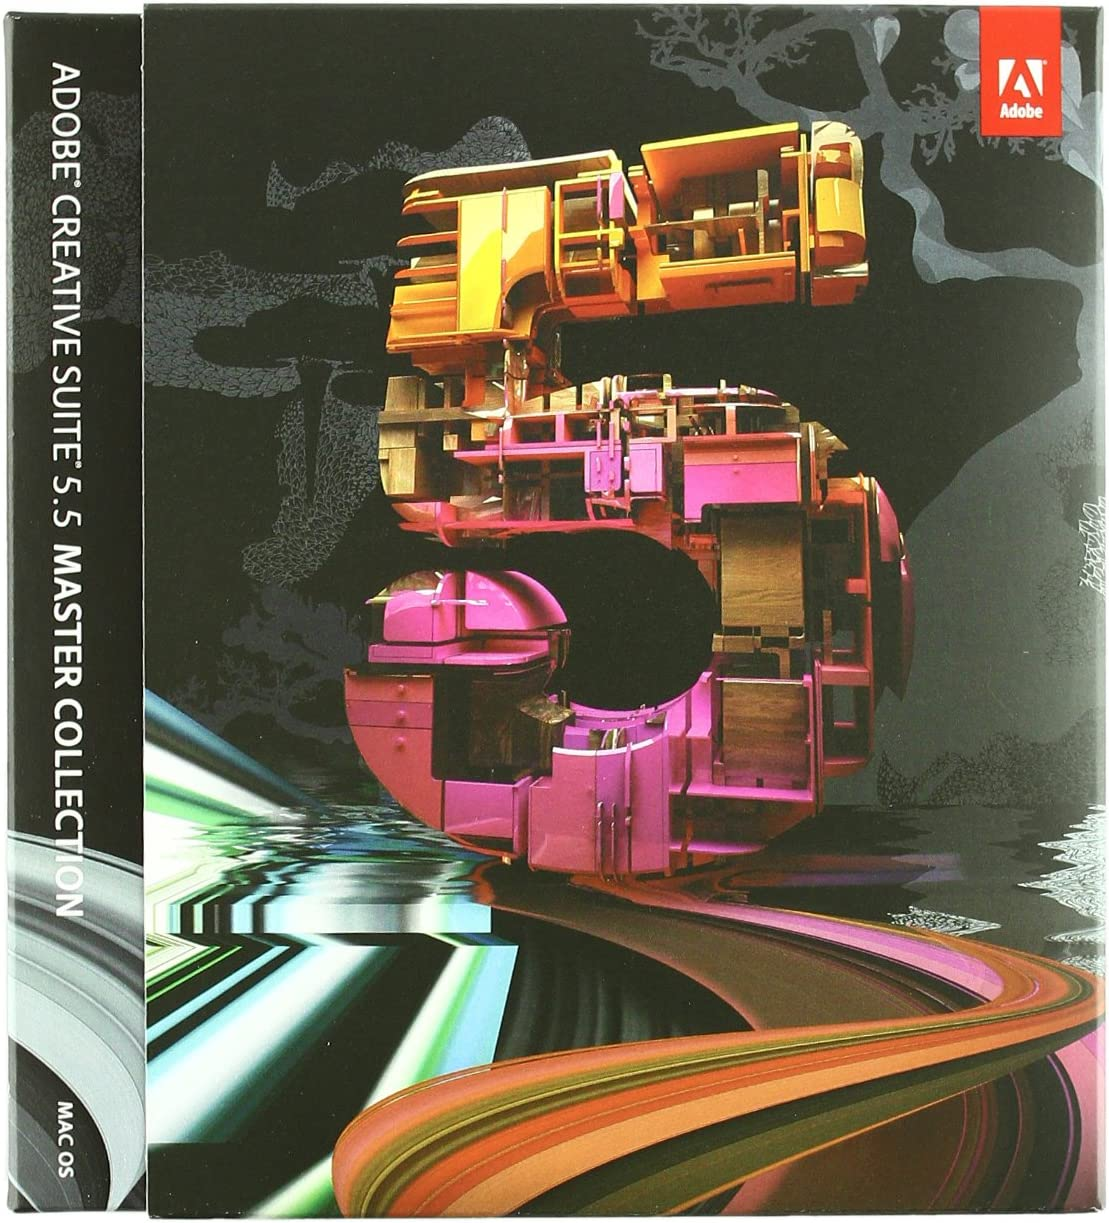 Adobe Creative Suite CS5.5